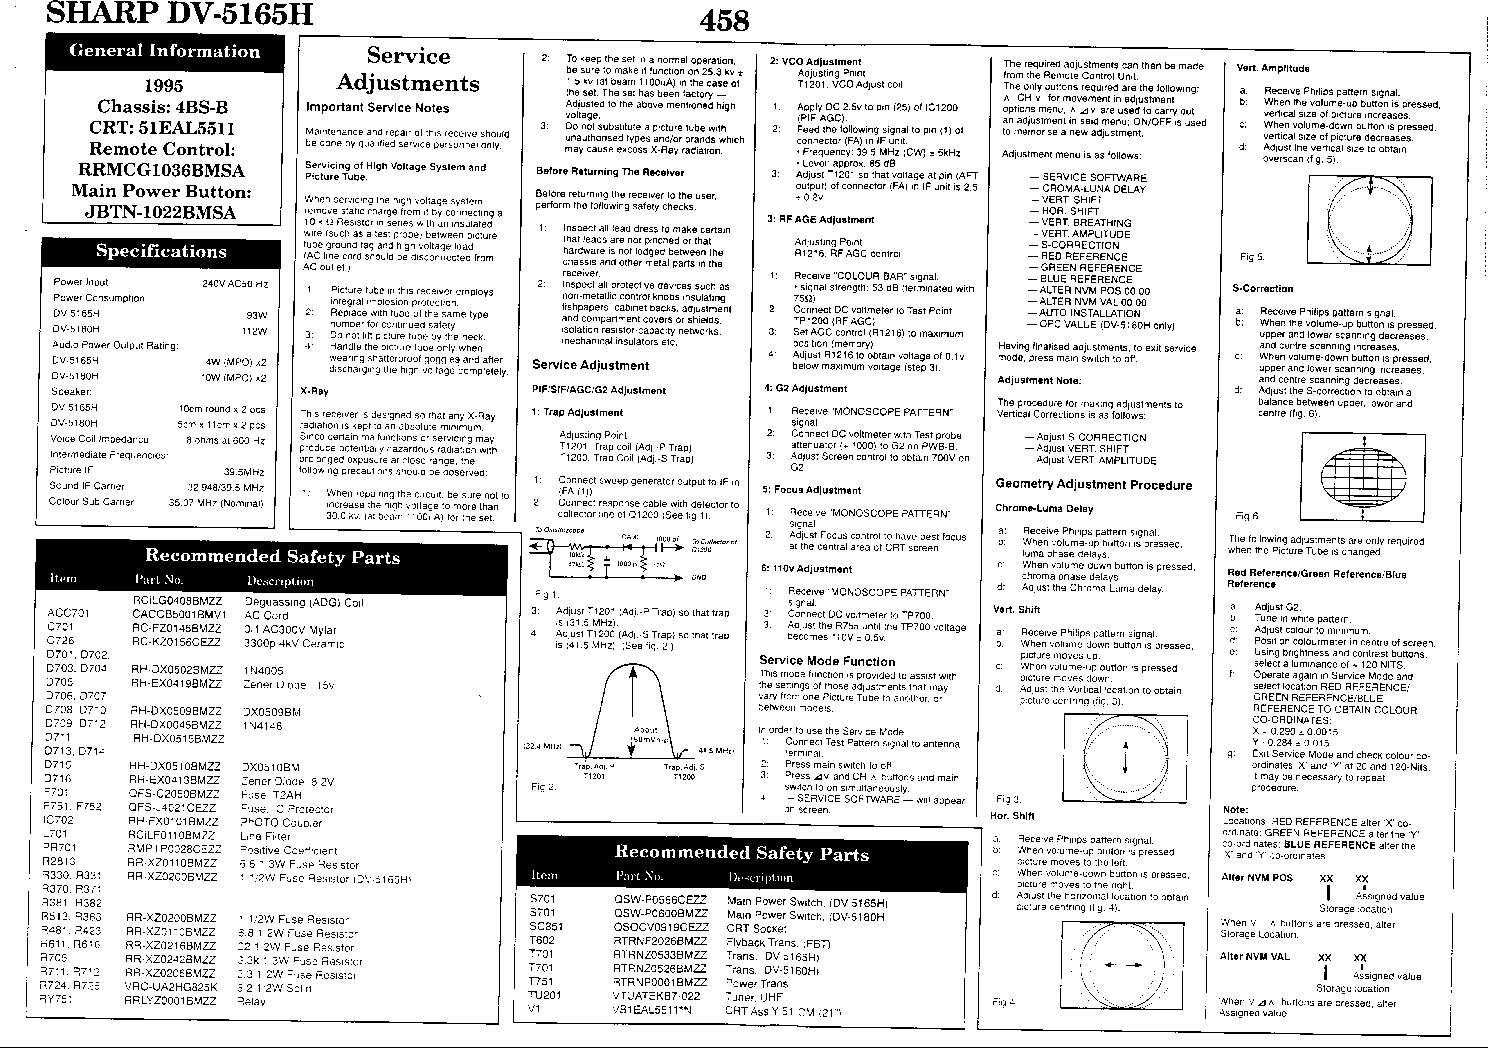 SHARP DV-5165H Service Manual download, schematics, eeprom